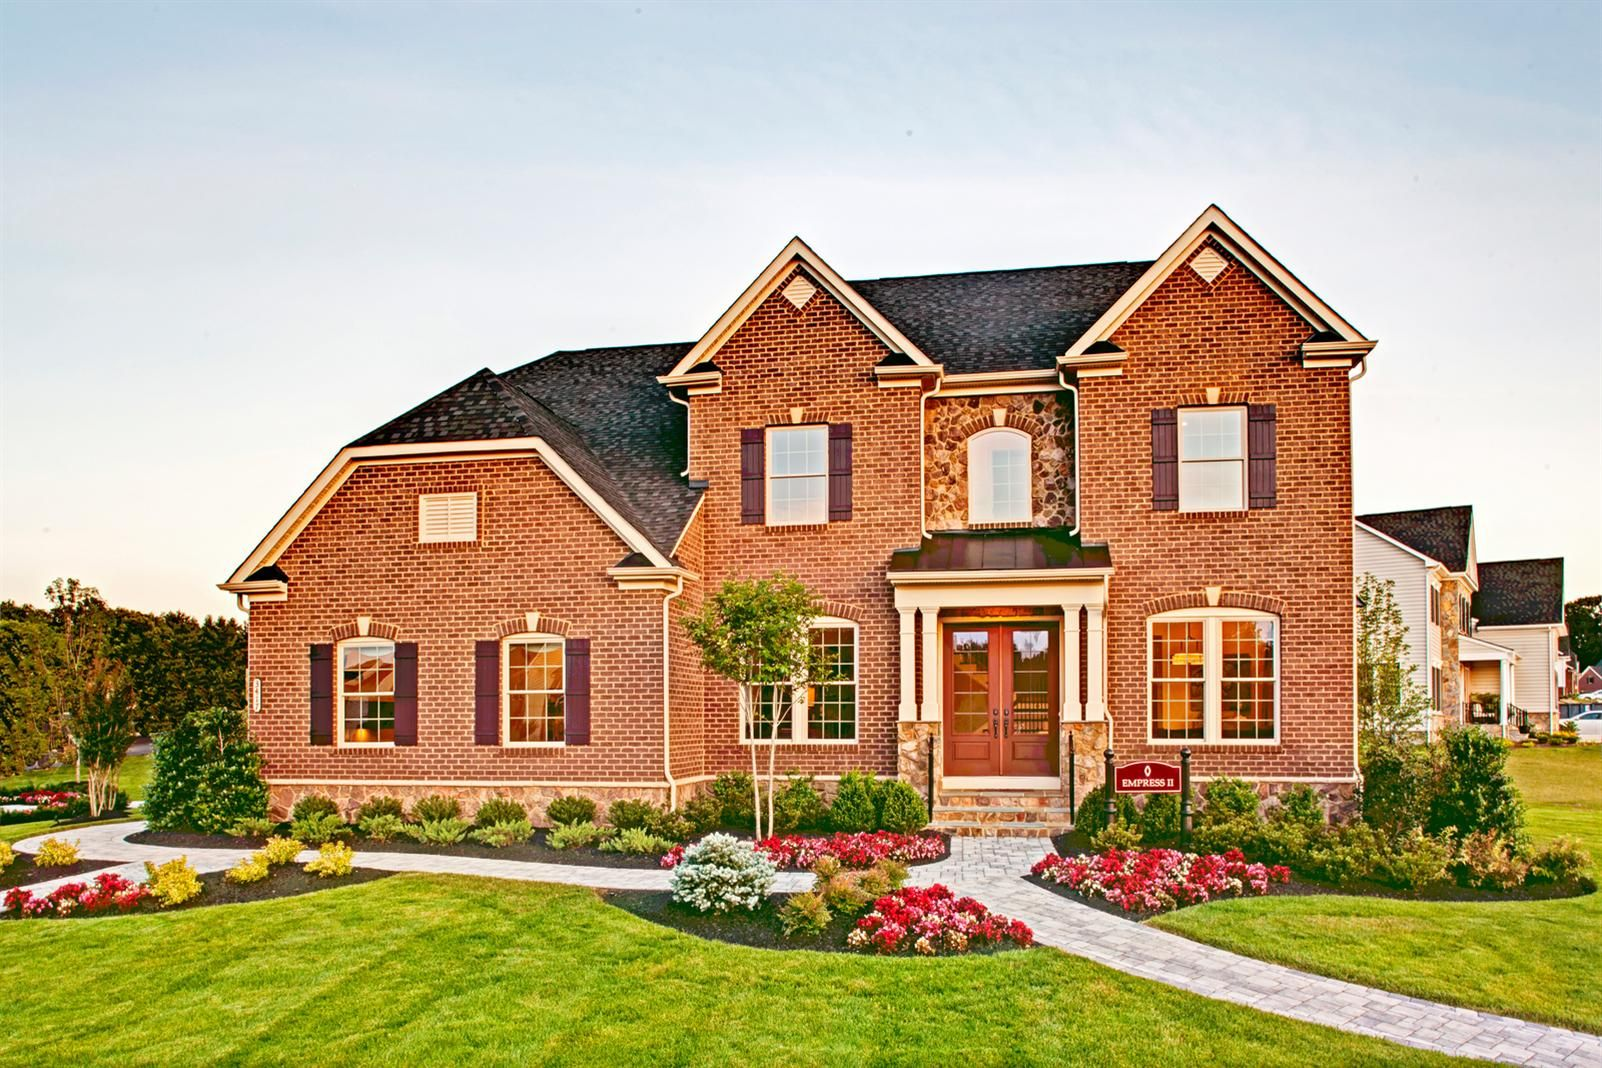 New Empress Ii Home Model At Aer Single Family Homes Malvern In Pa Nvhomes